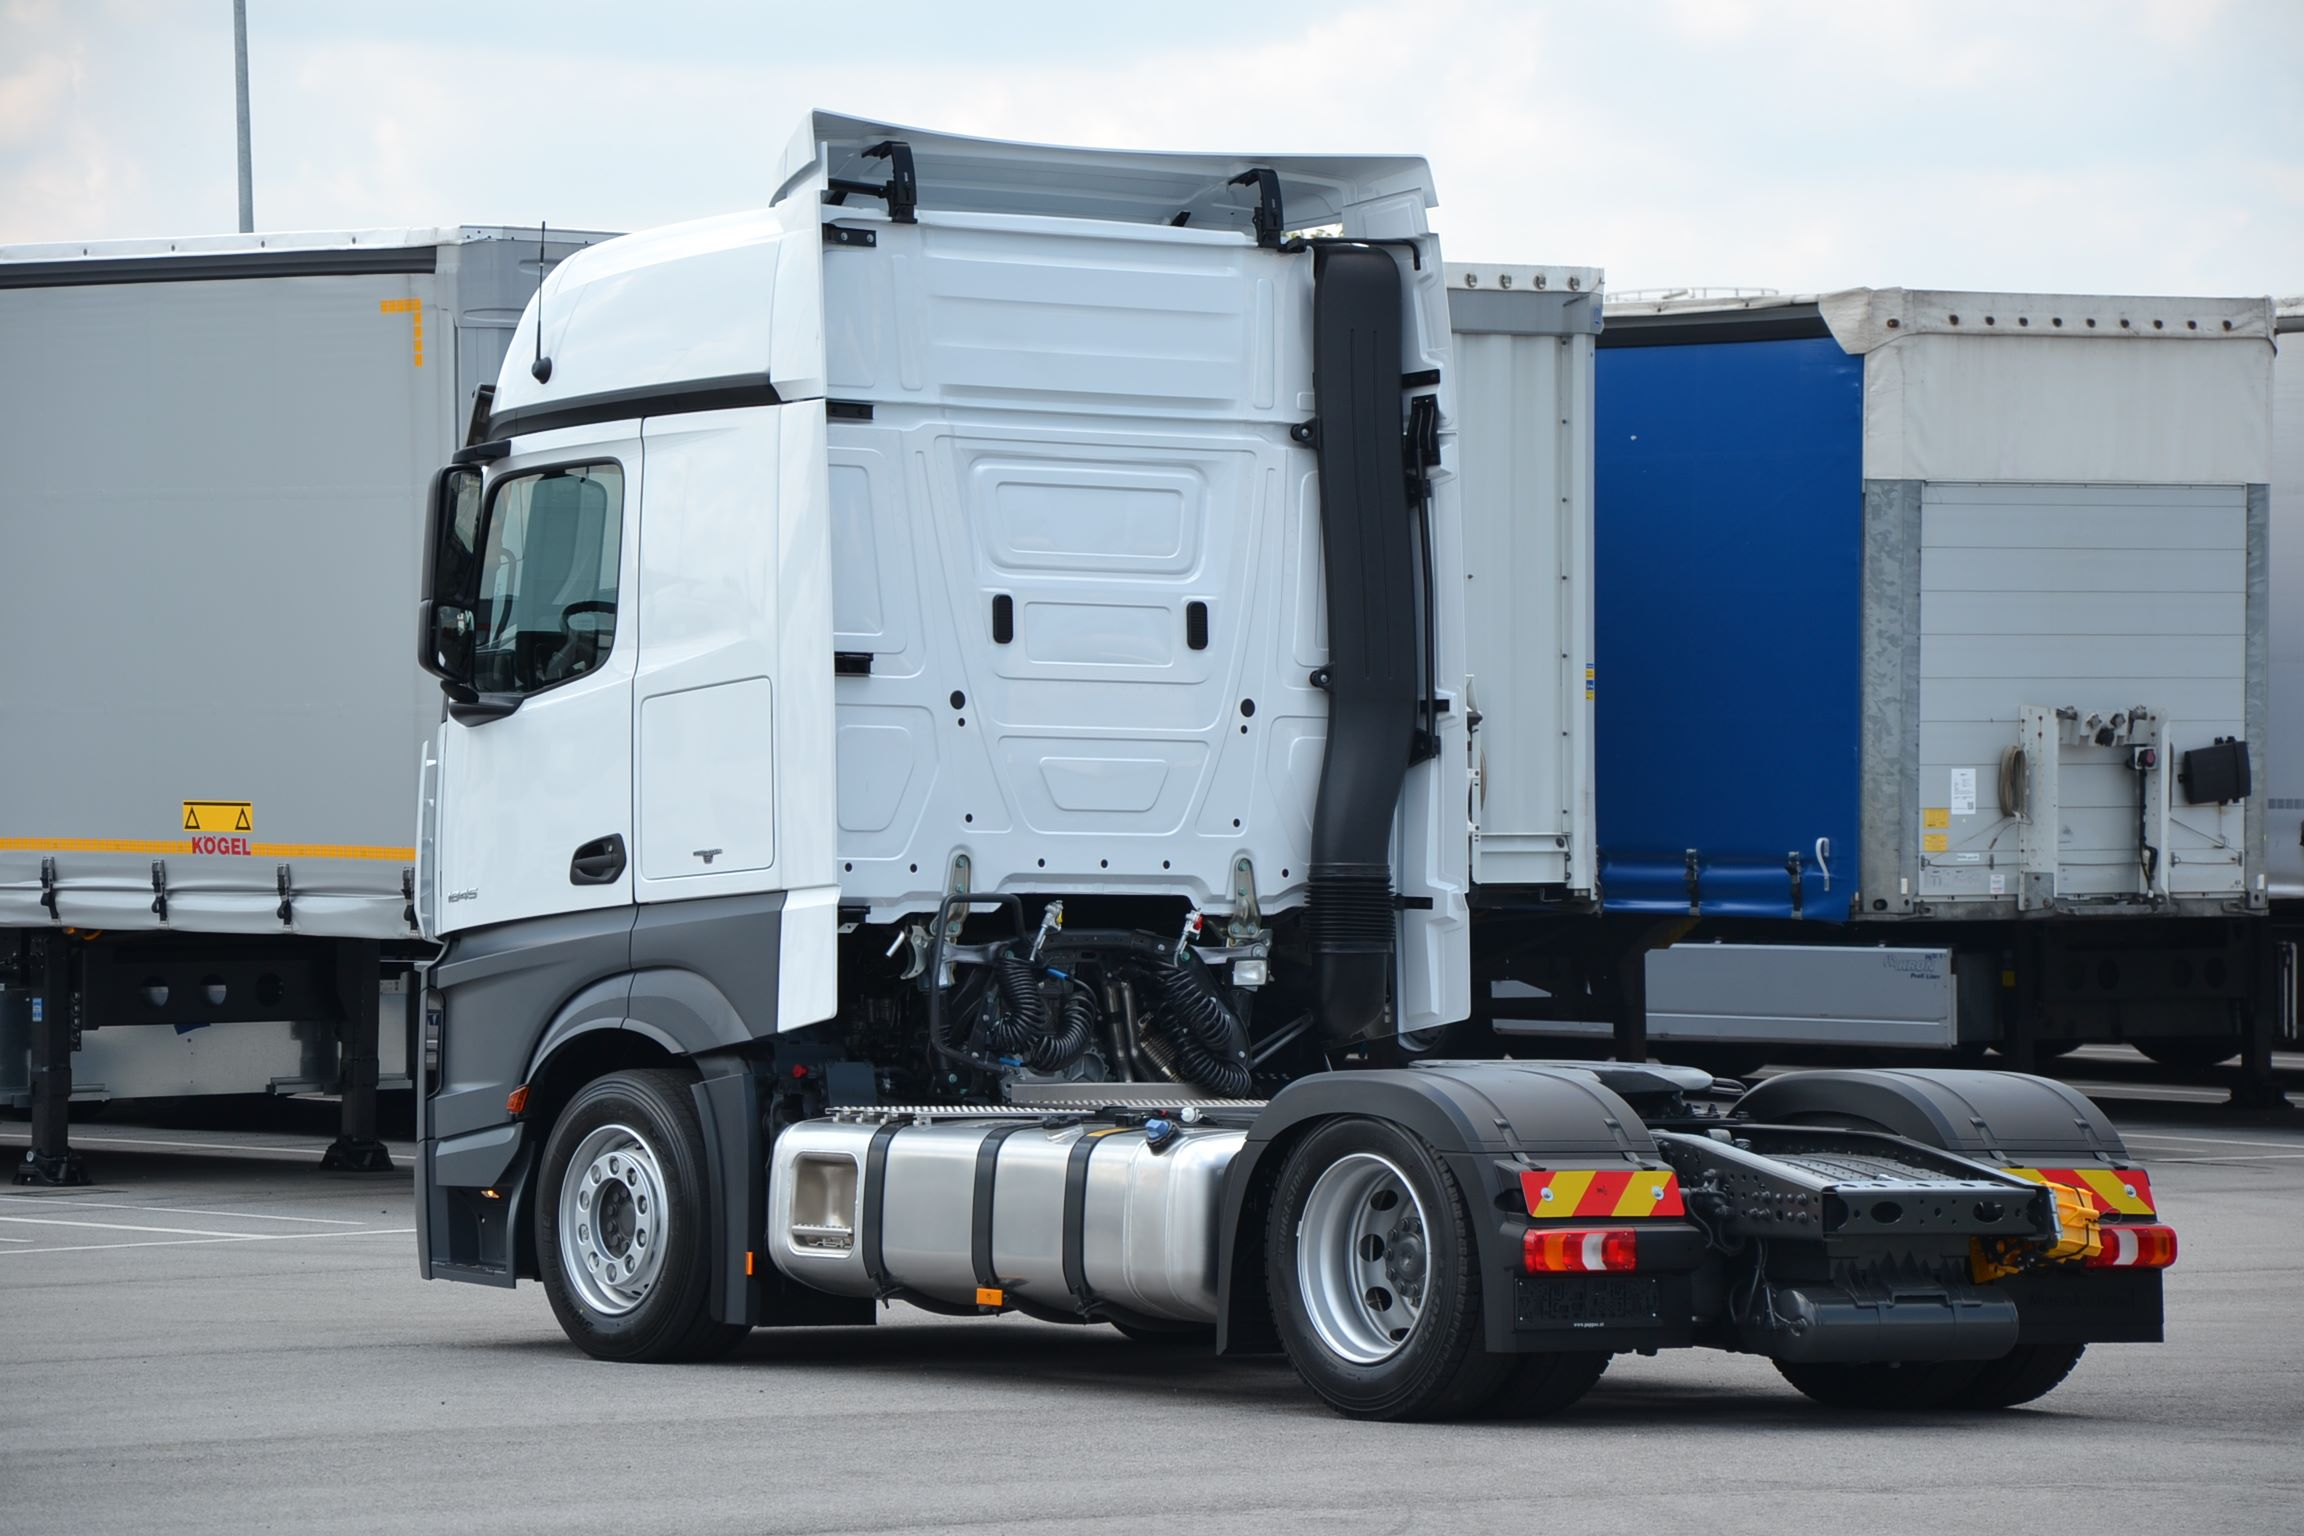 Mercedes Benz Mega tractor unit 050656-2